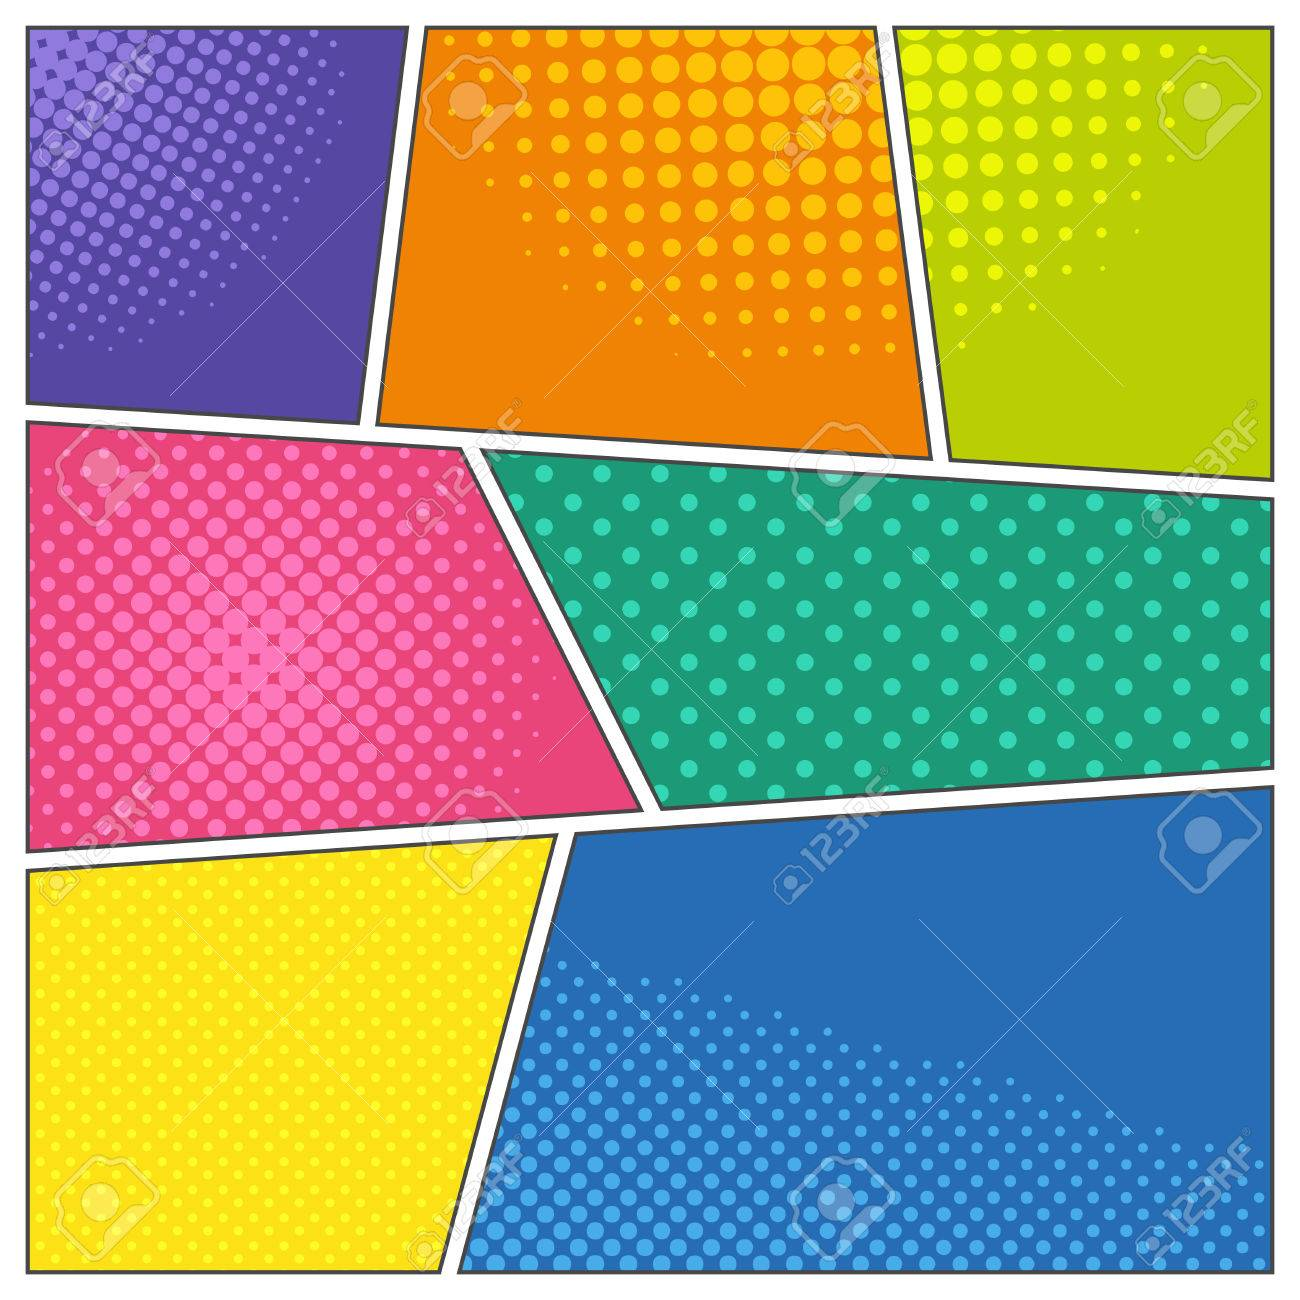 Comic Book Frames In Different Colors With Dotted And Halftone ...